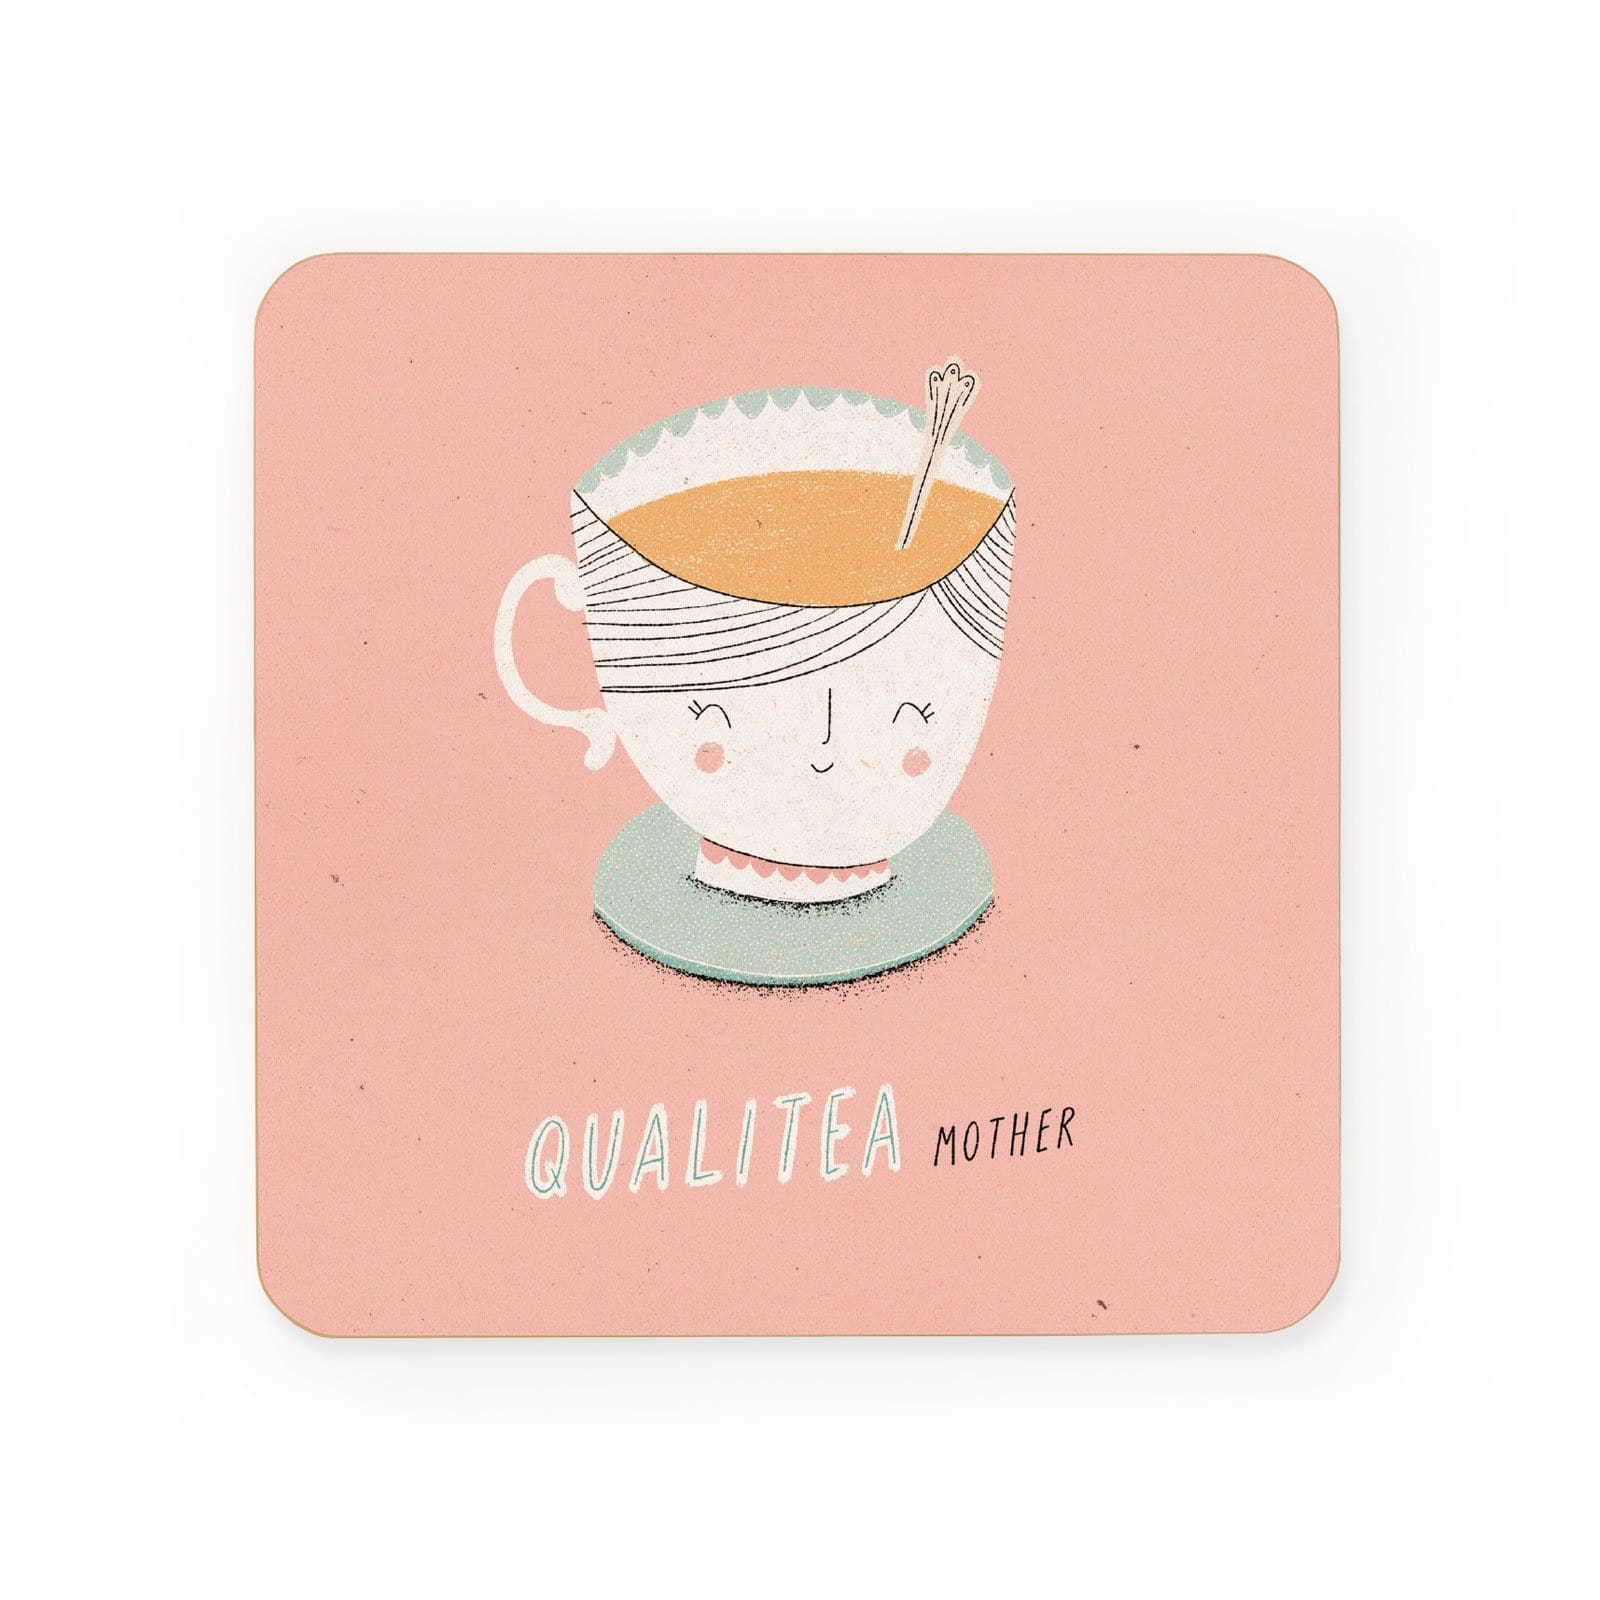 Qualitea Mother Coaster